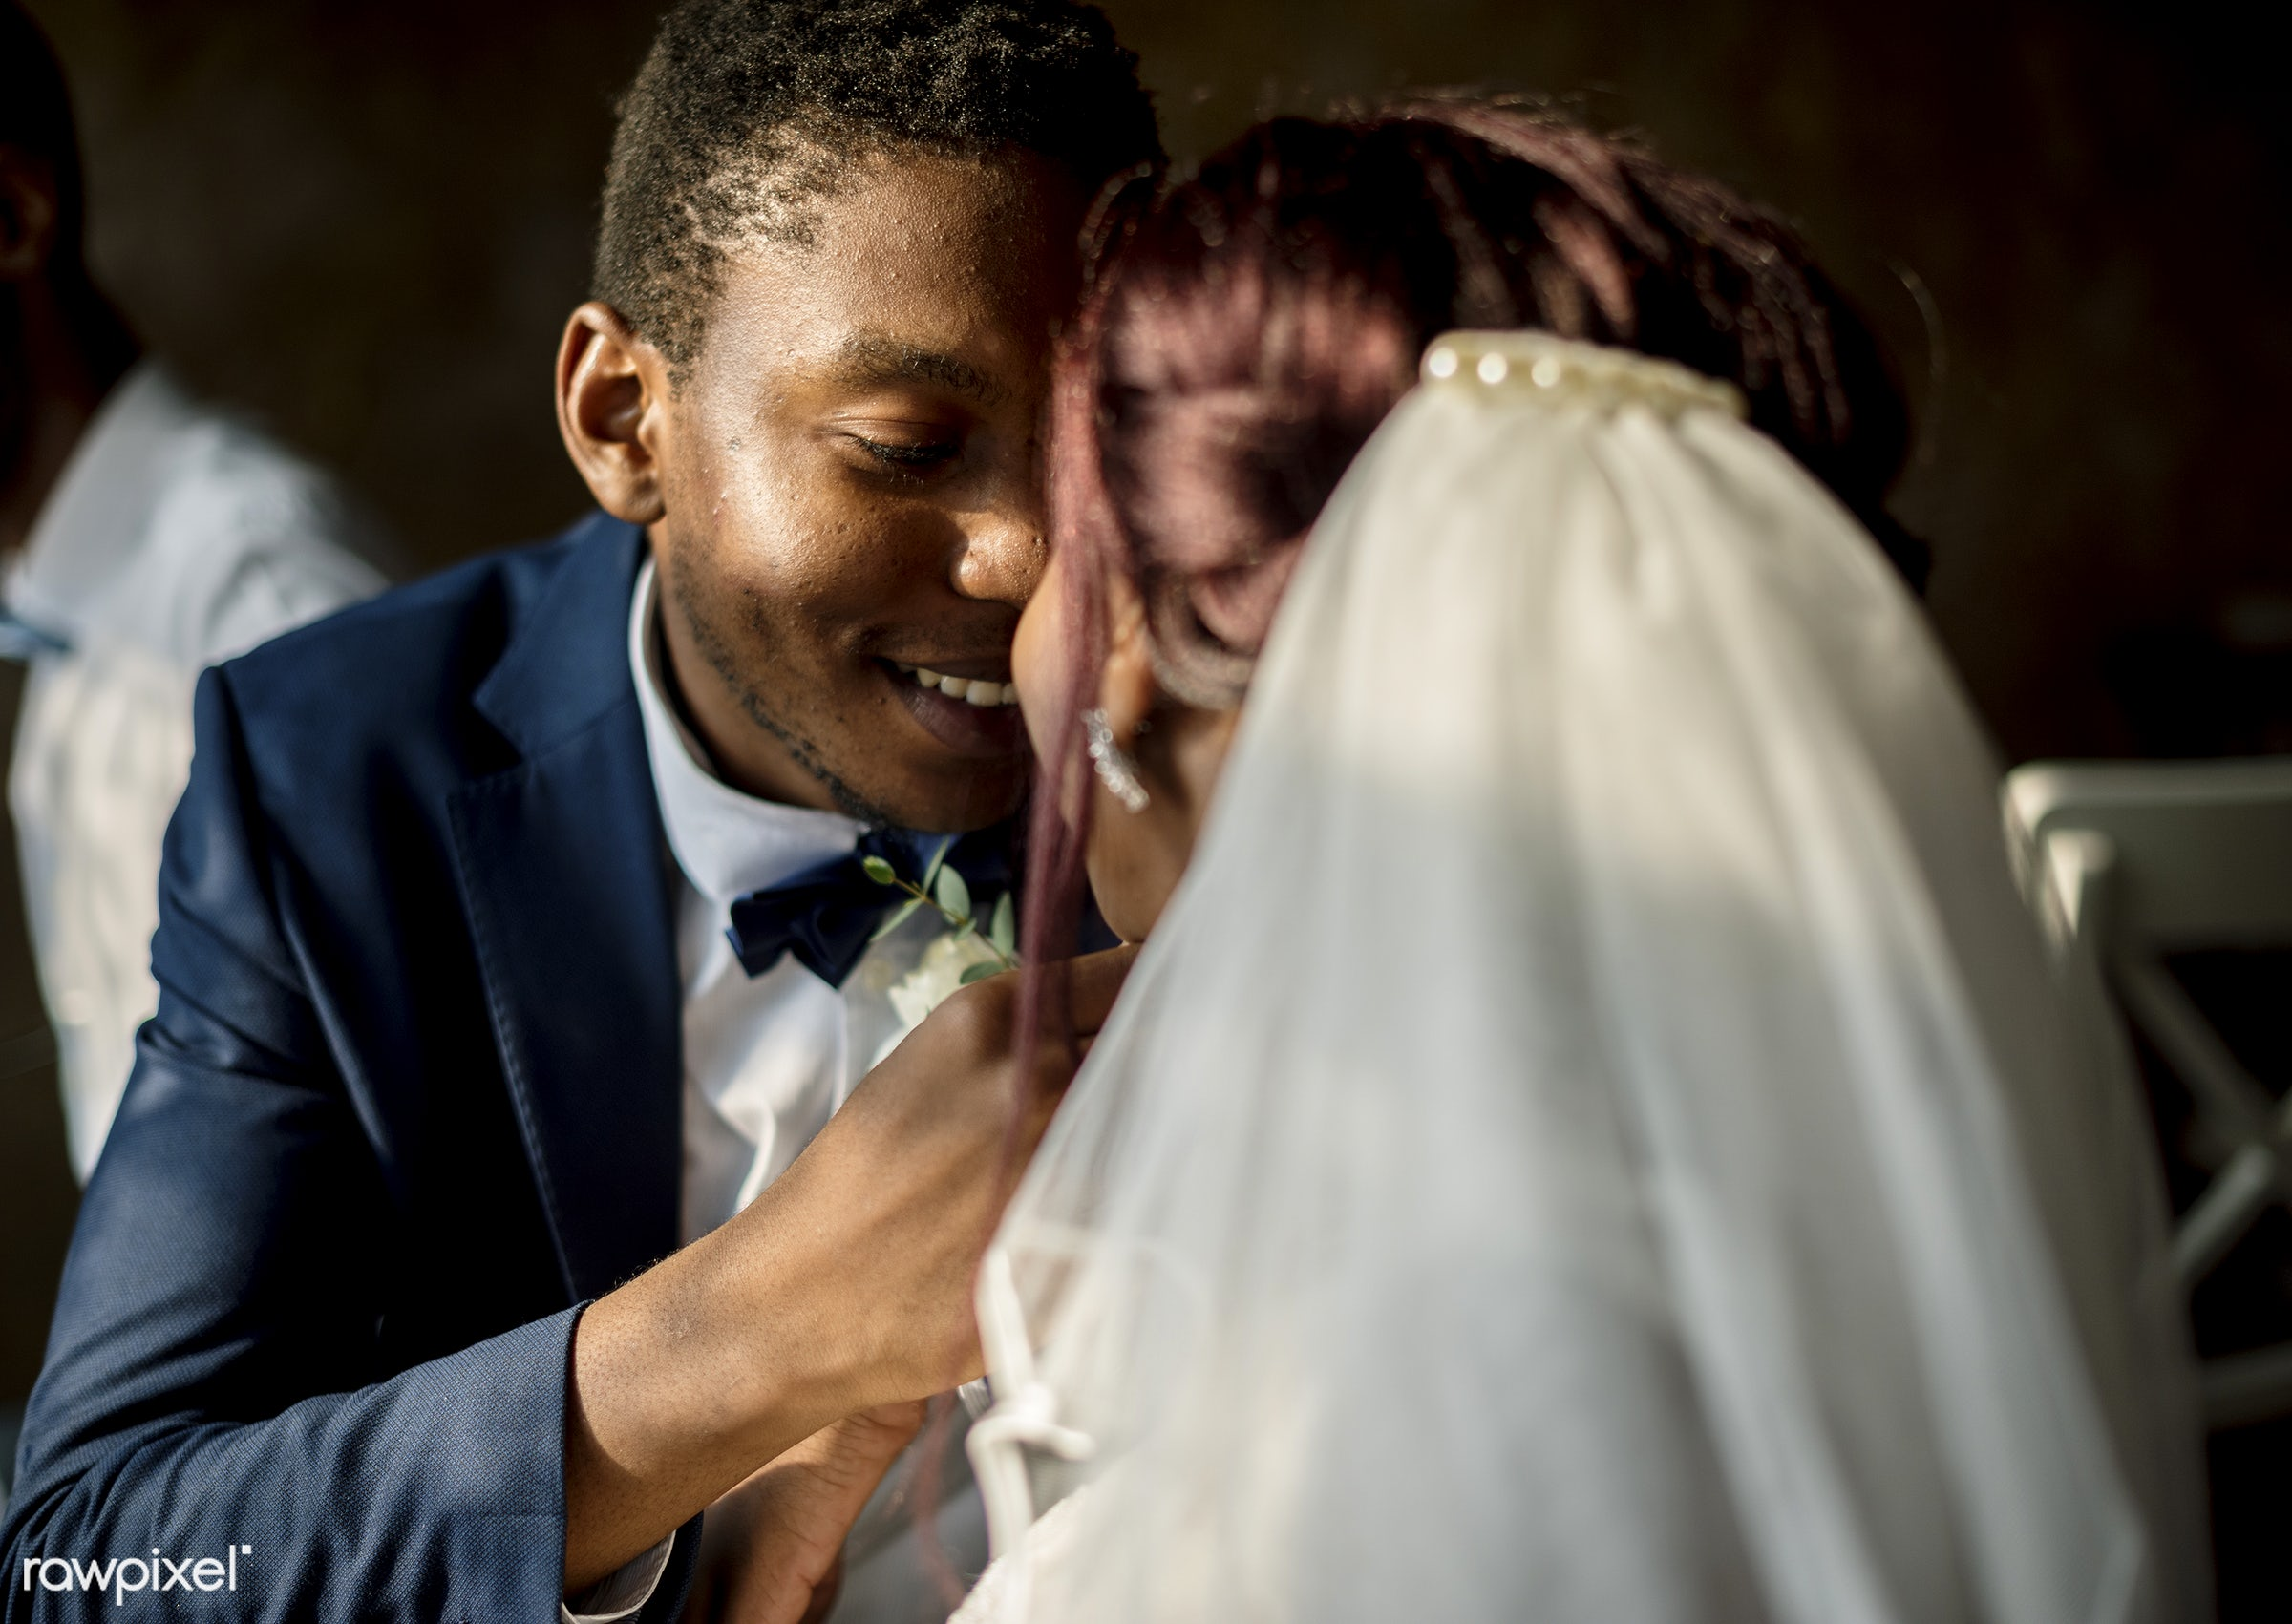 occasion, veil, people, love, married, spouse, bride, cheerful, black, kissing, african descent, newlywed, togetherness,...